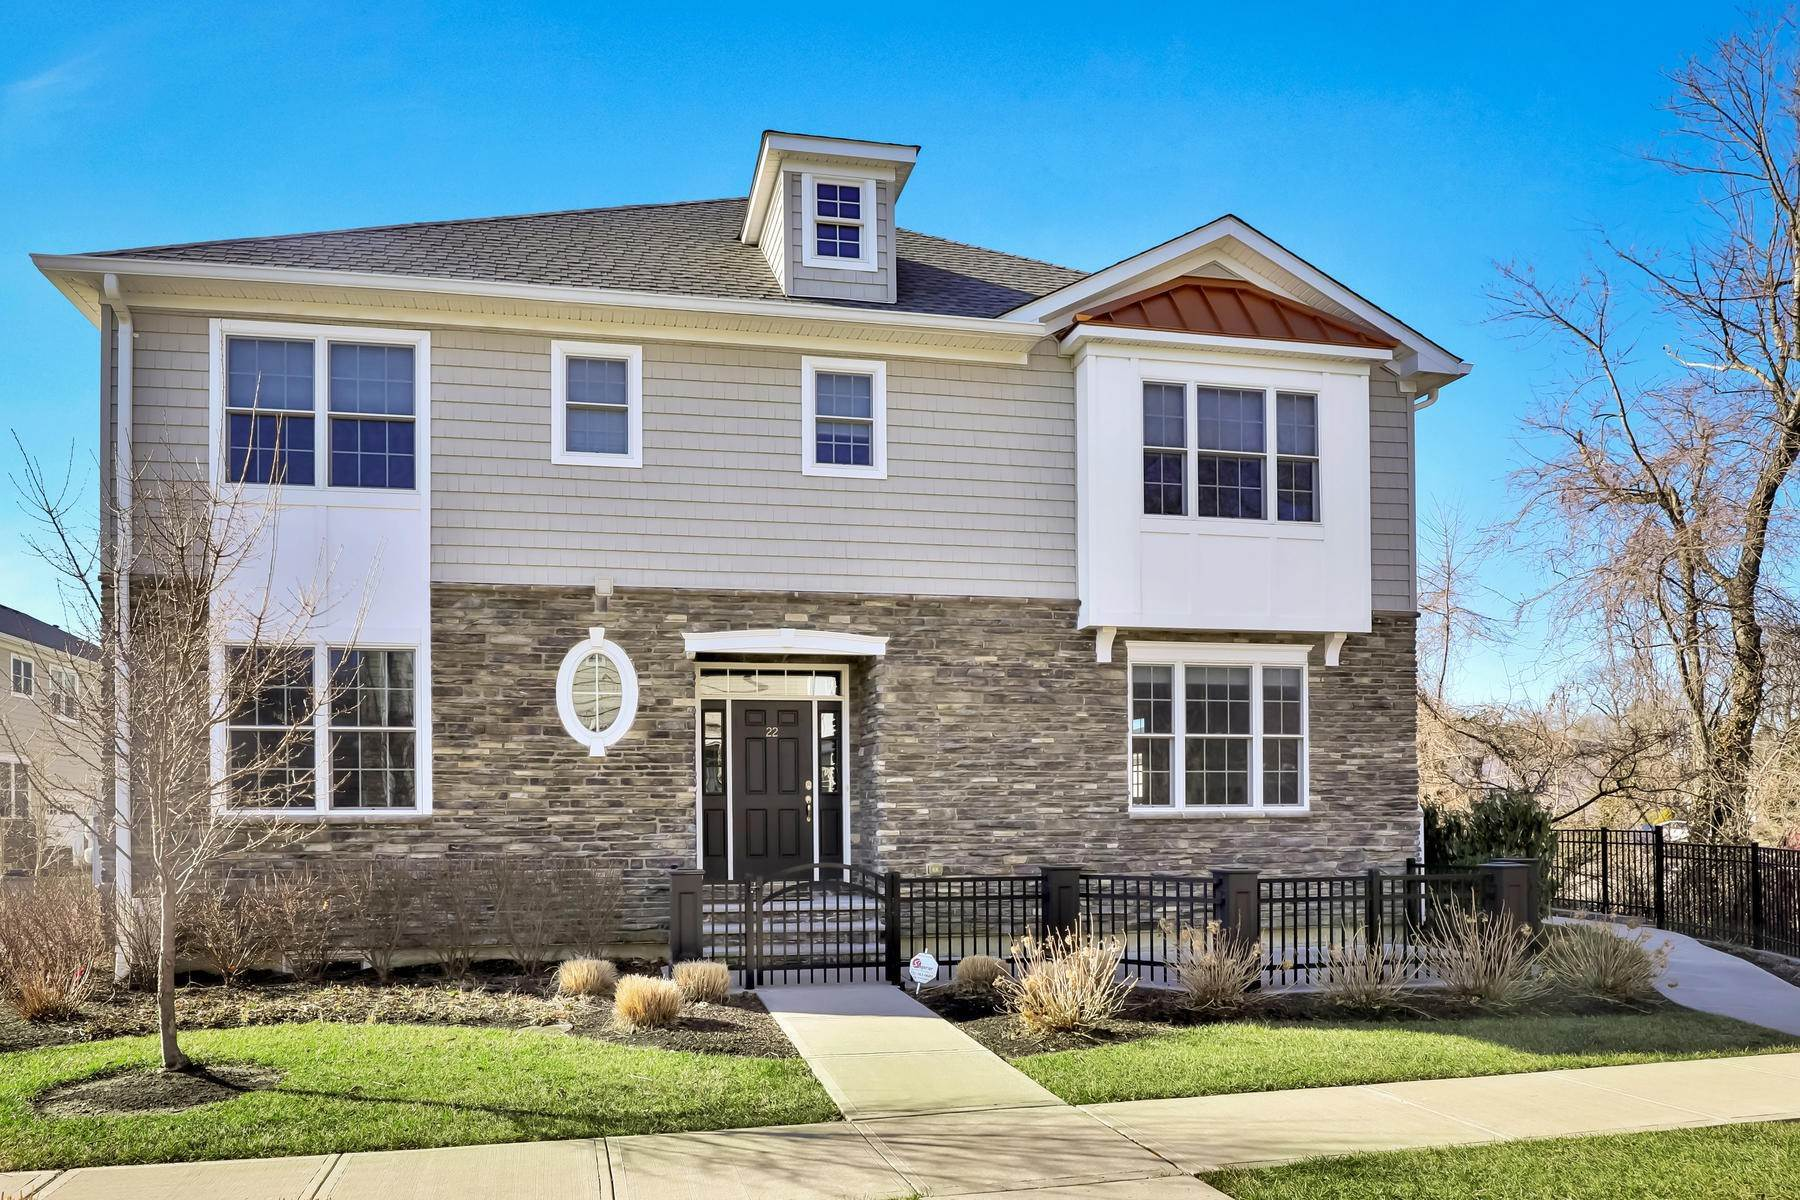 Condominiums for Sale at Desirable Carriage Gate Townhouse 22 Carriage Gate Drive, Little Silver, New Jersey 07739 United States